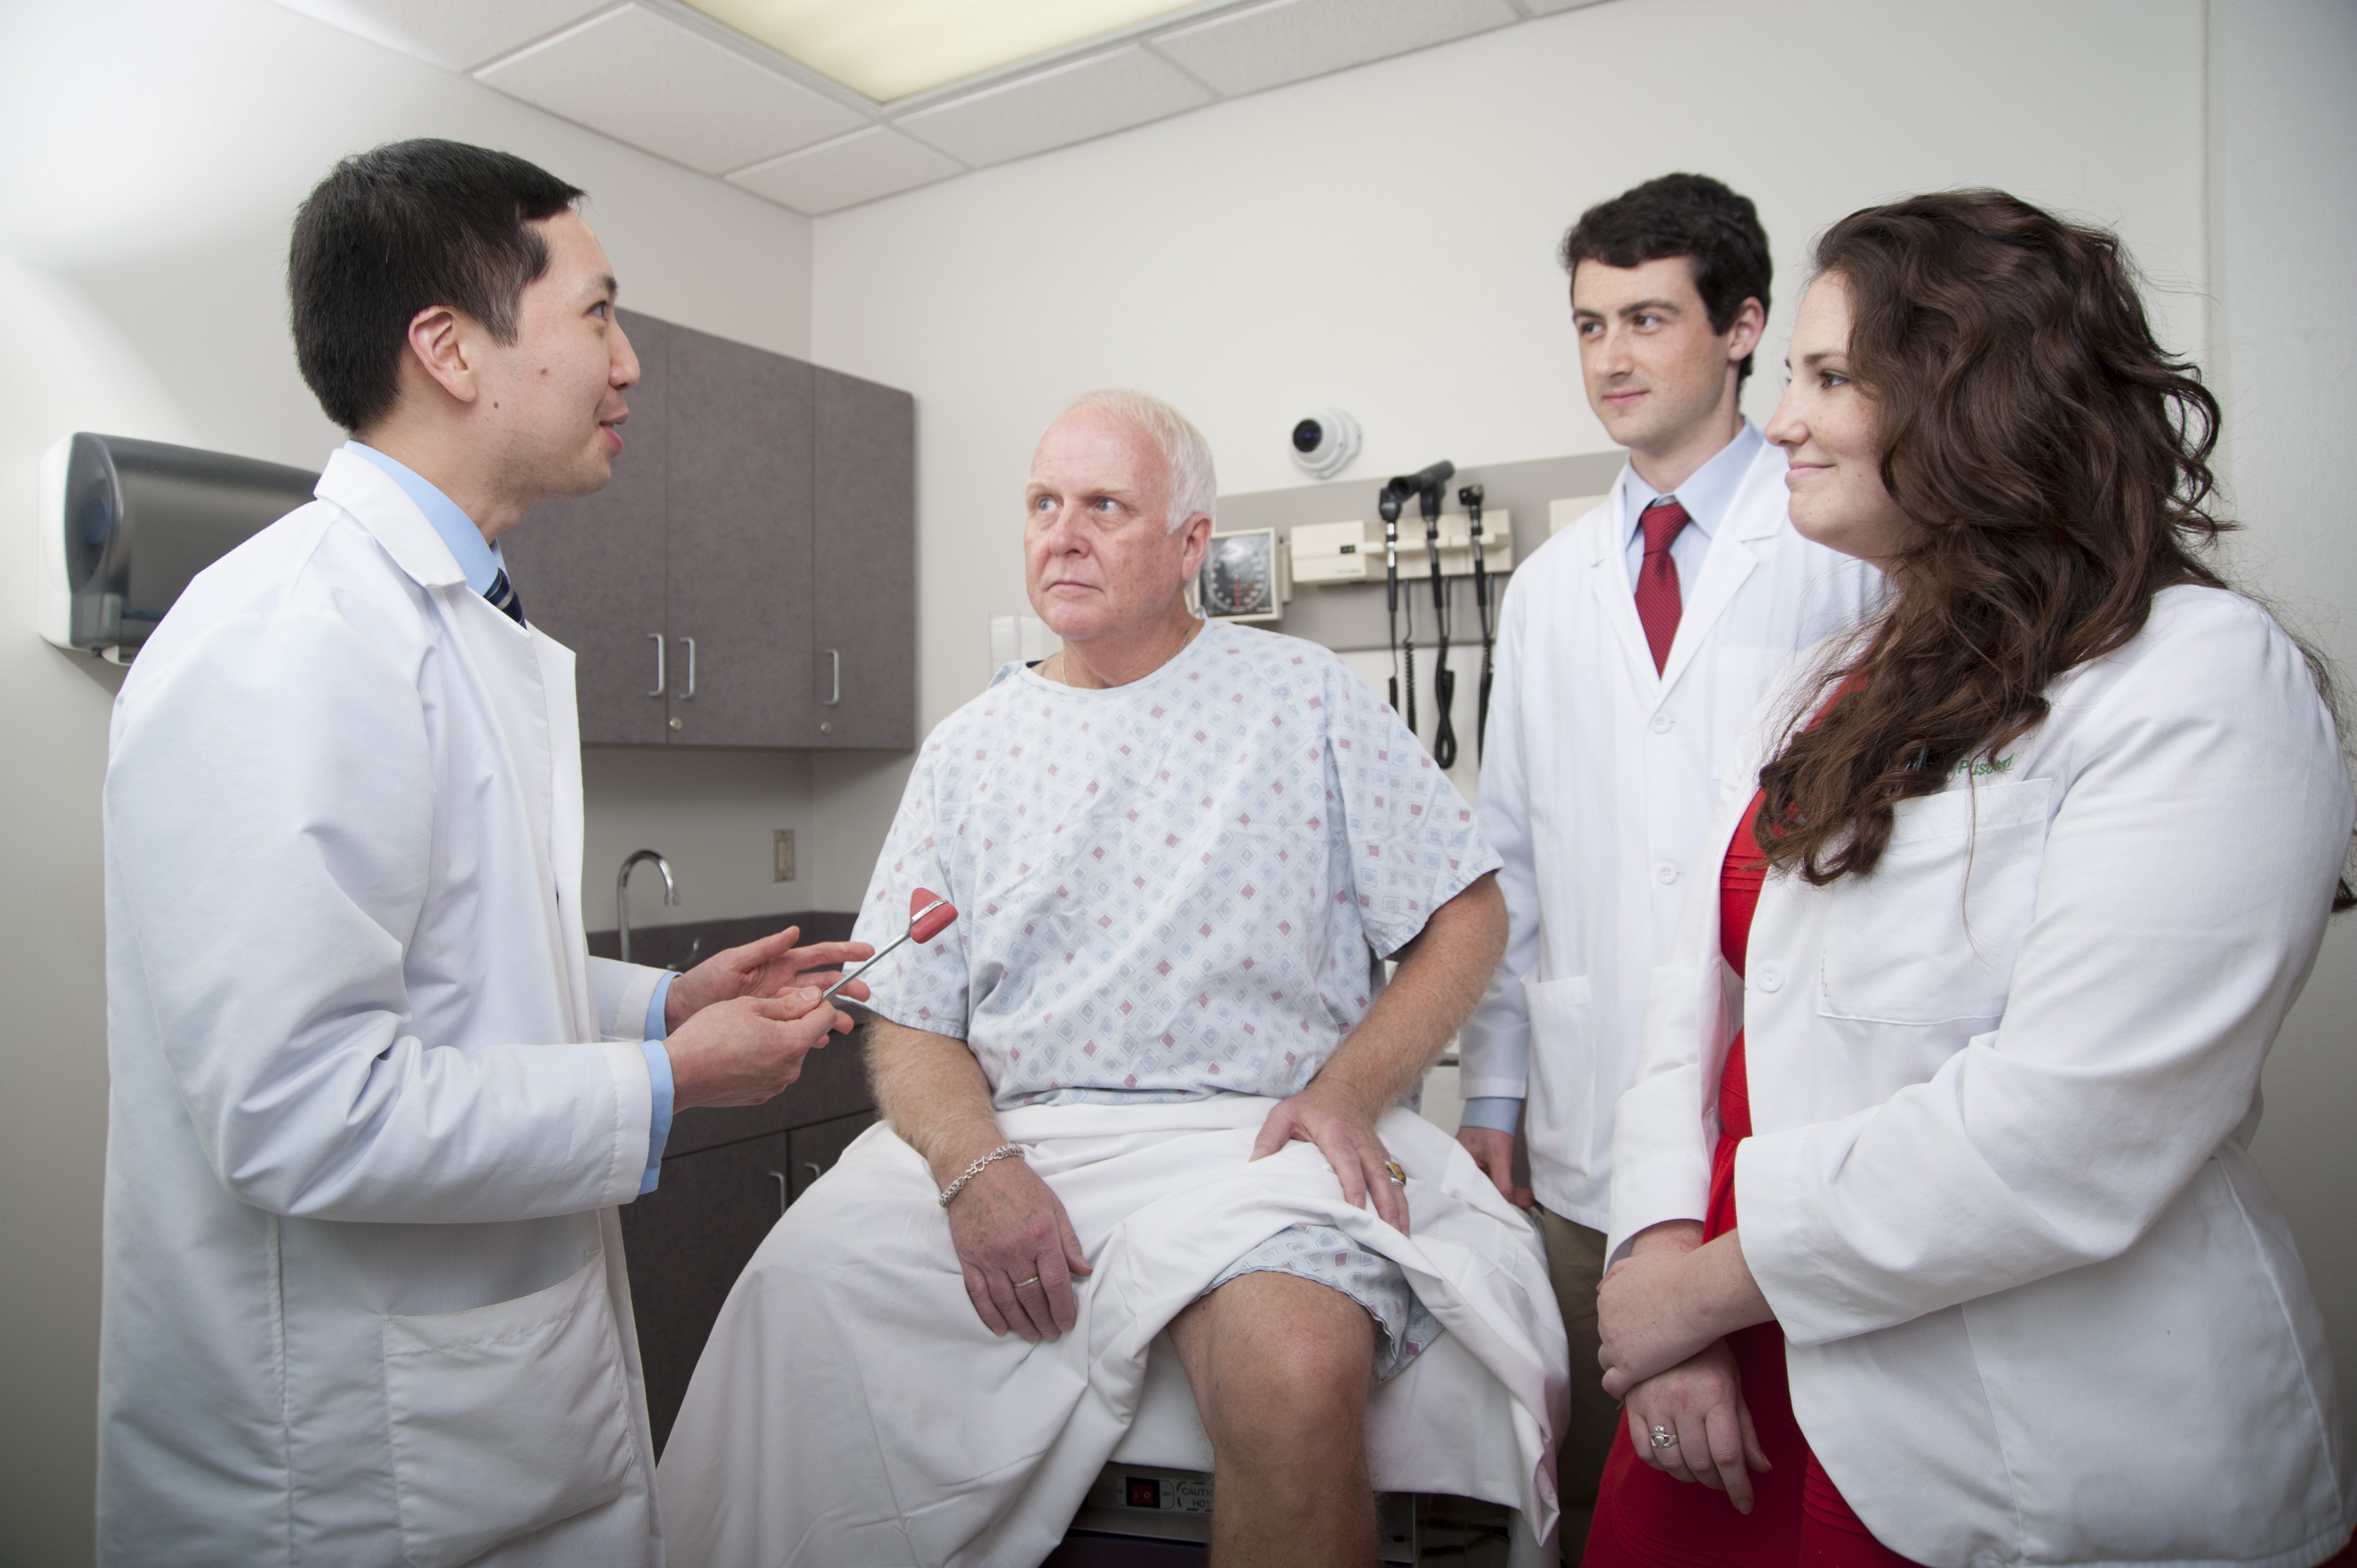 a faculty person teaches two students to examine the knee of a standardized patient